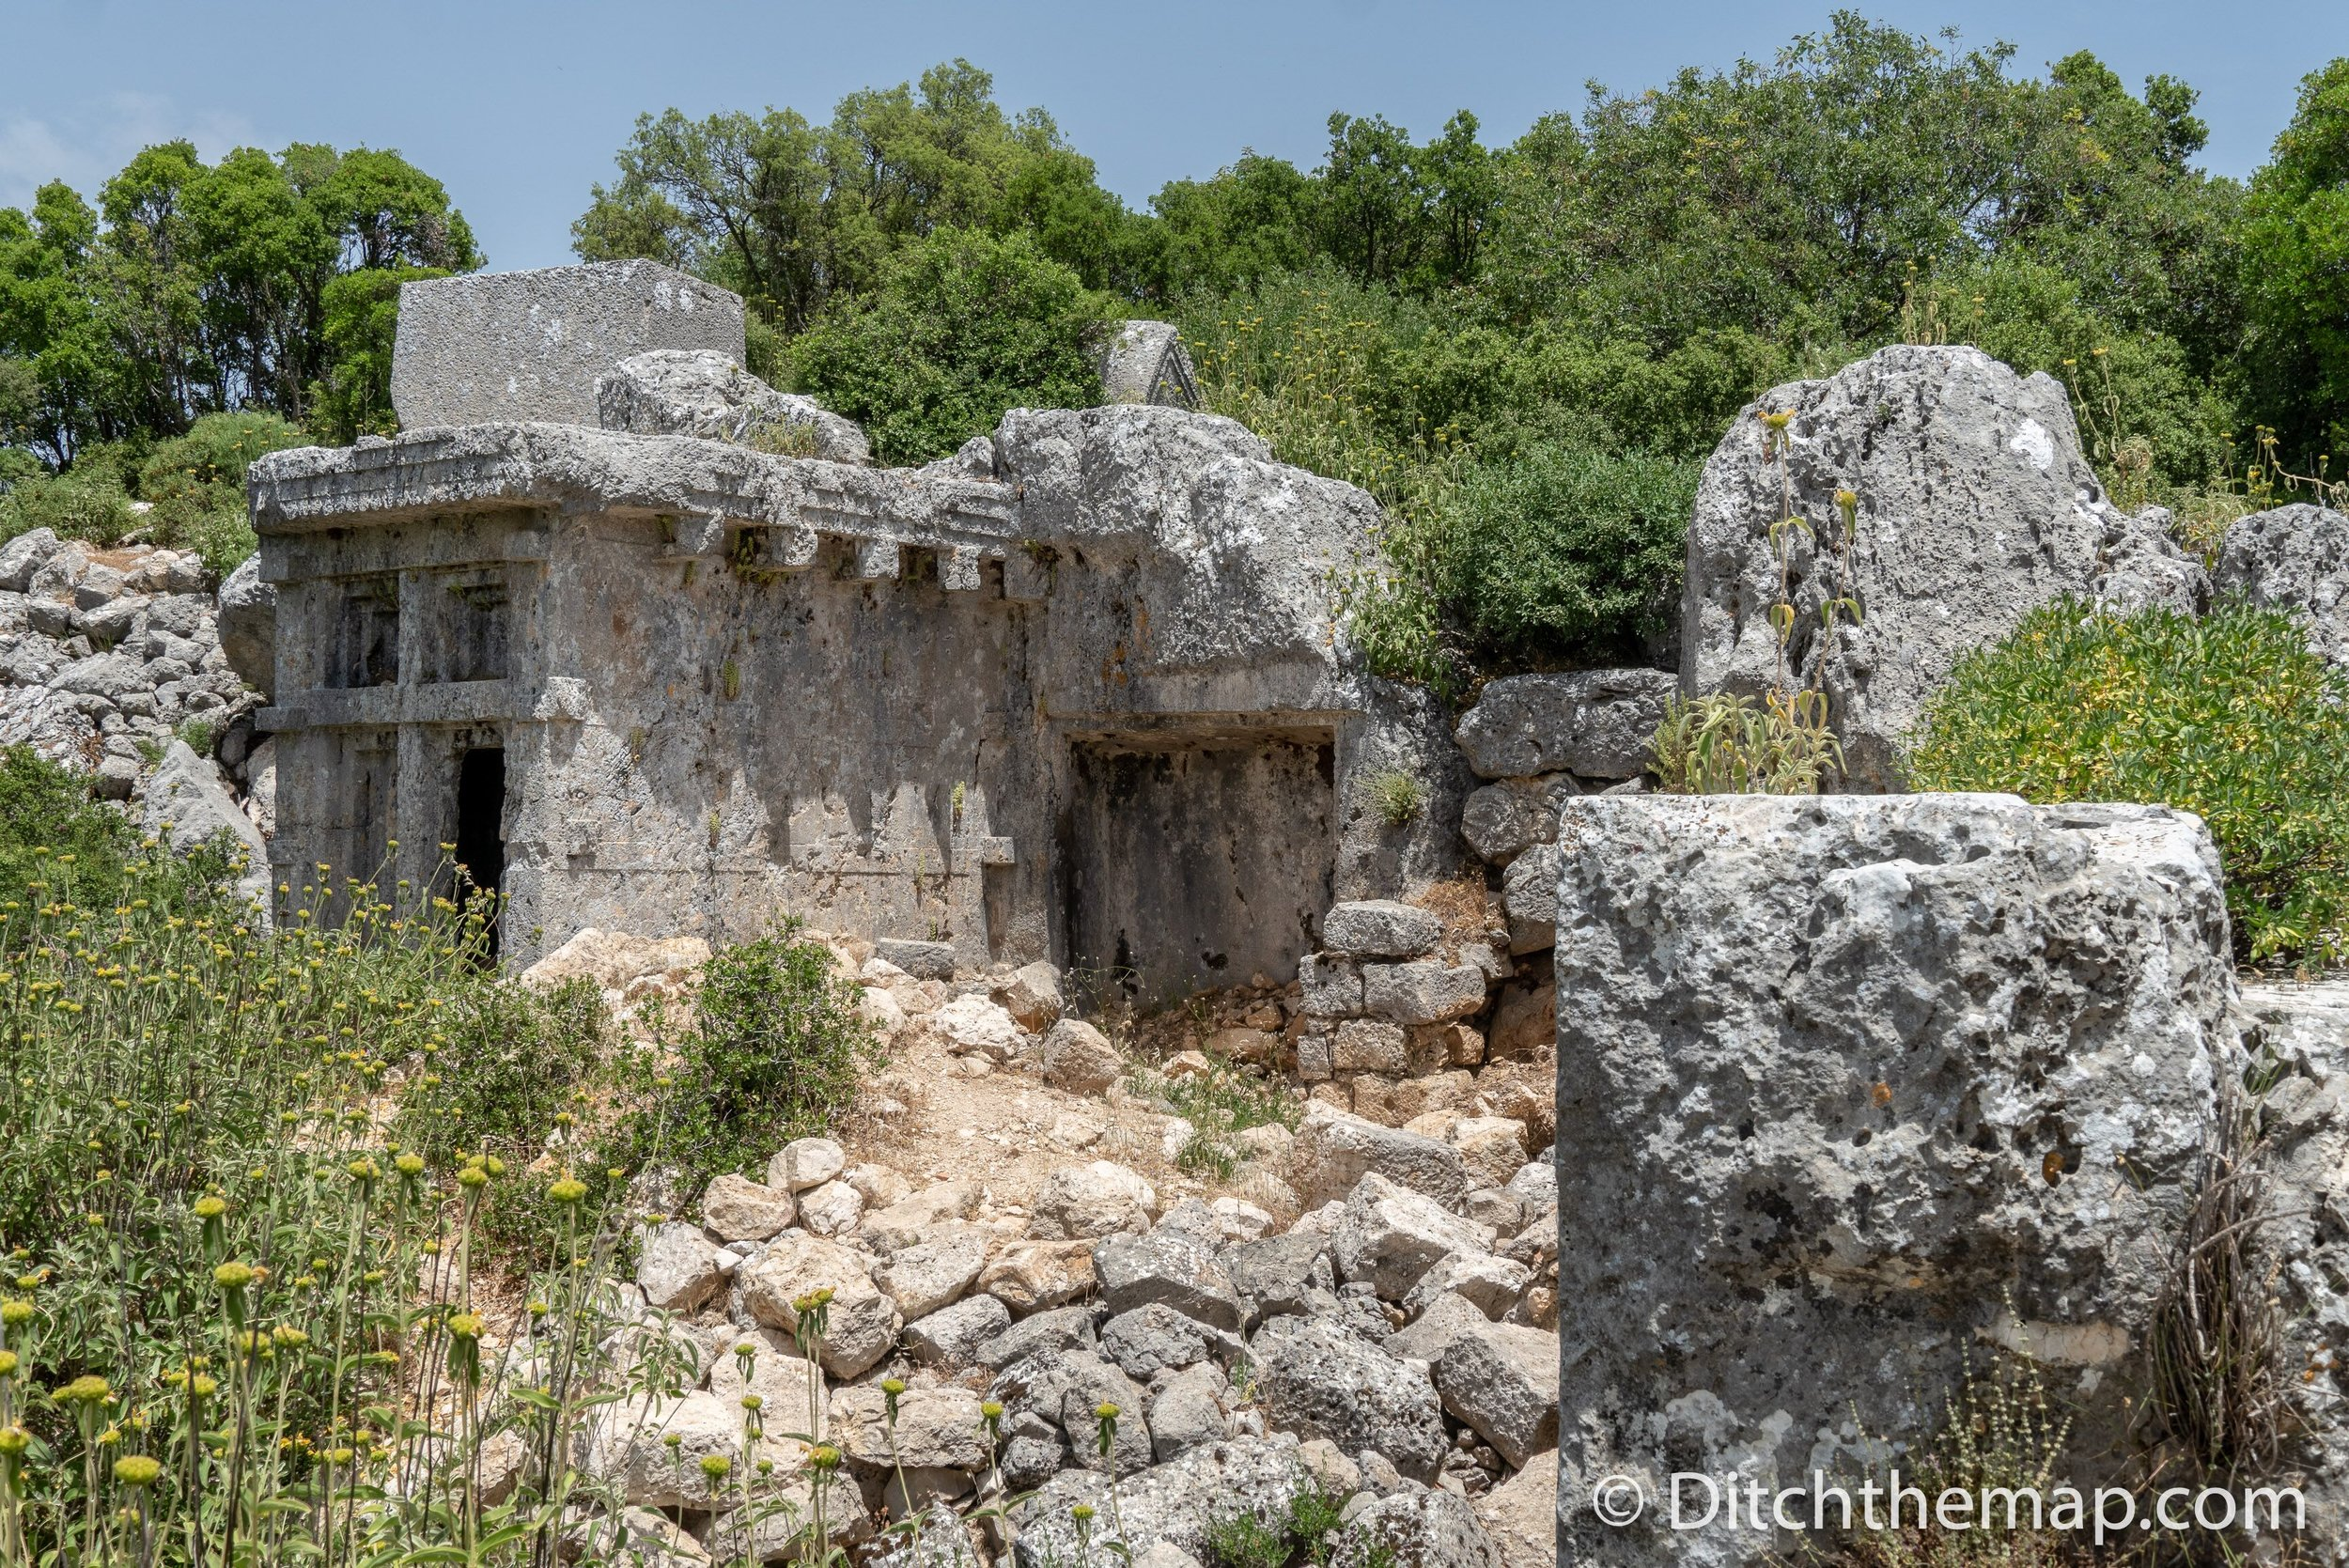 the remains of stone tombs at the ancient lycian city of phellos